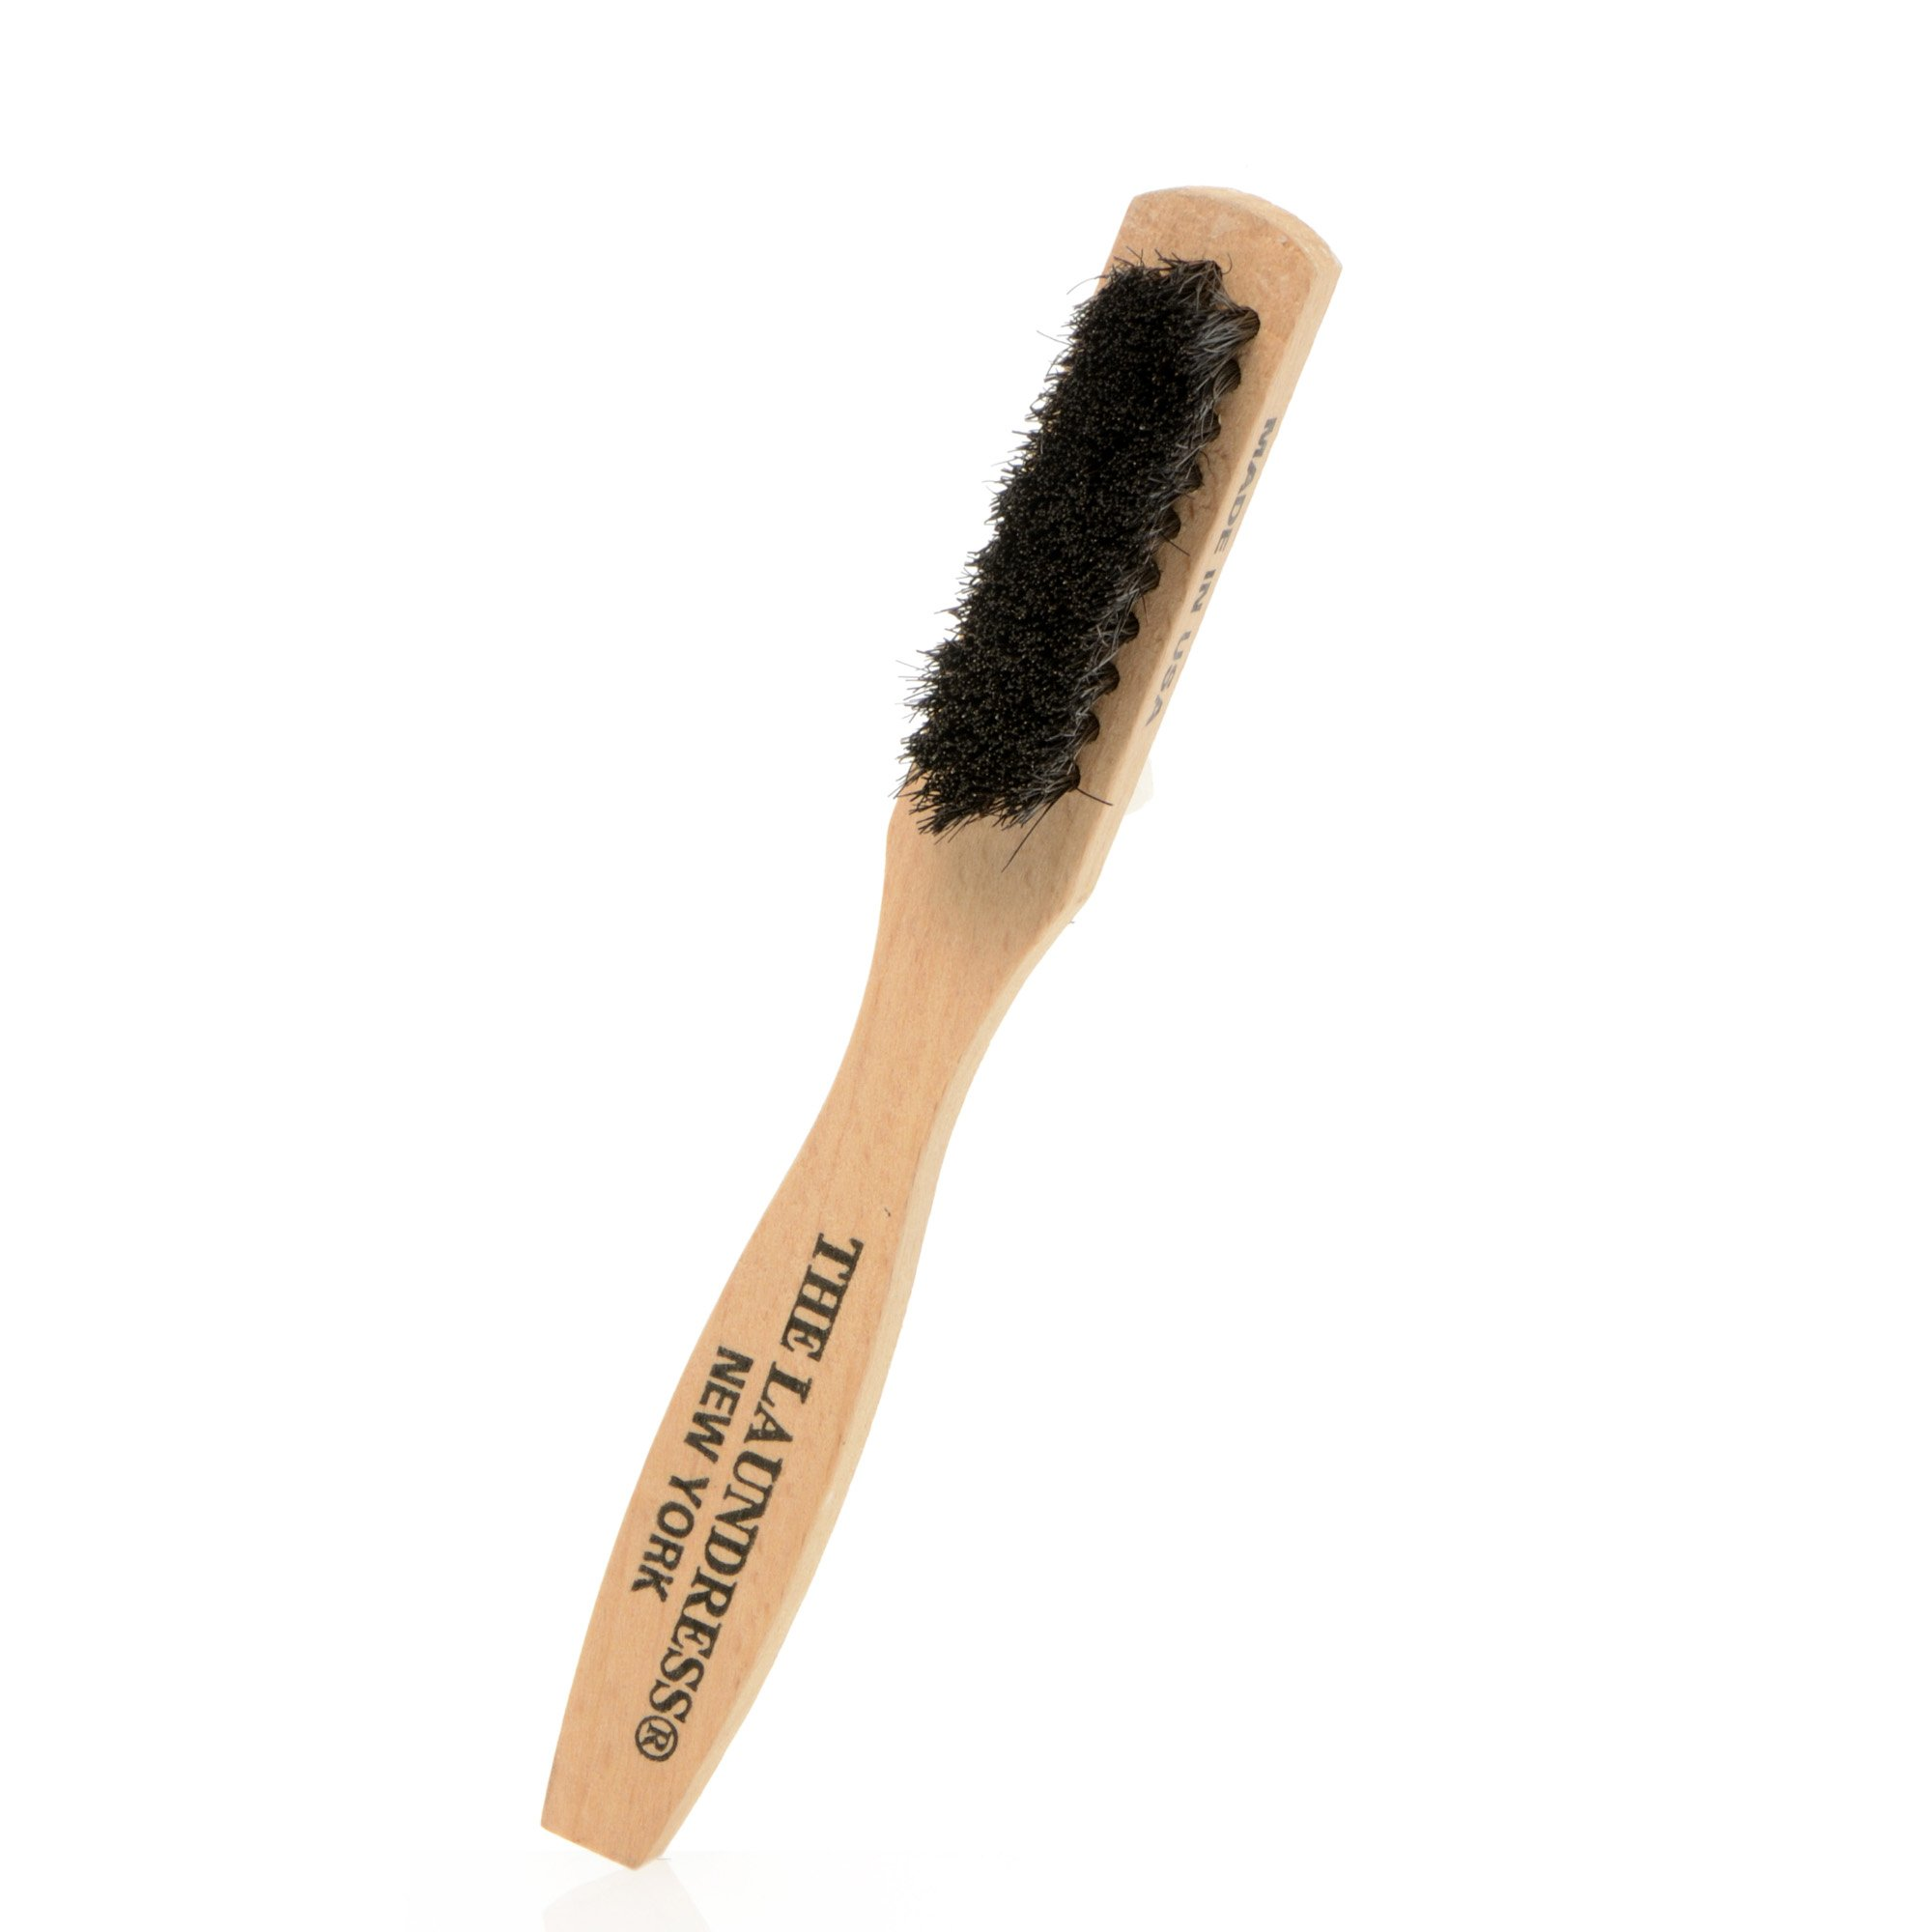 The Laundress Stain Brush, 2.75 Cubic Inch, Small, Natural